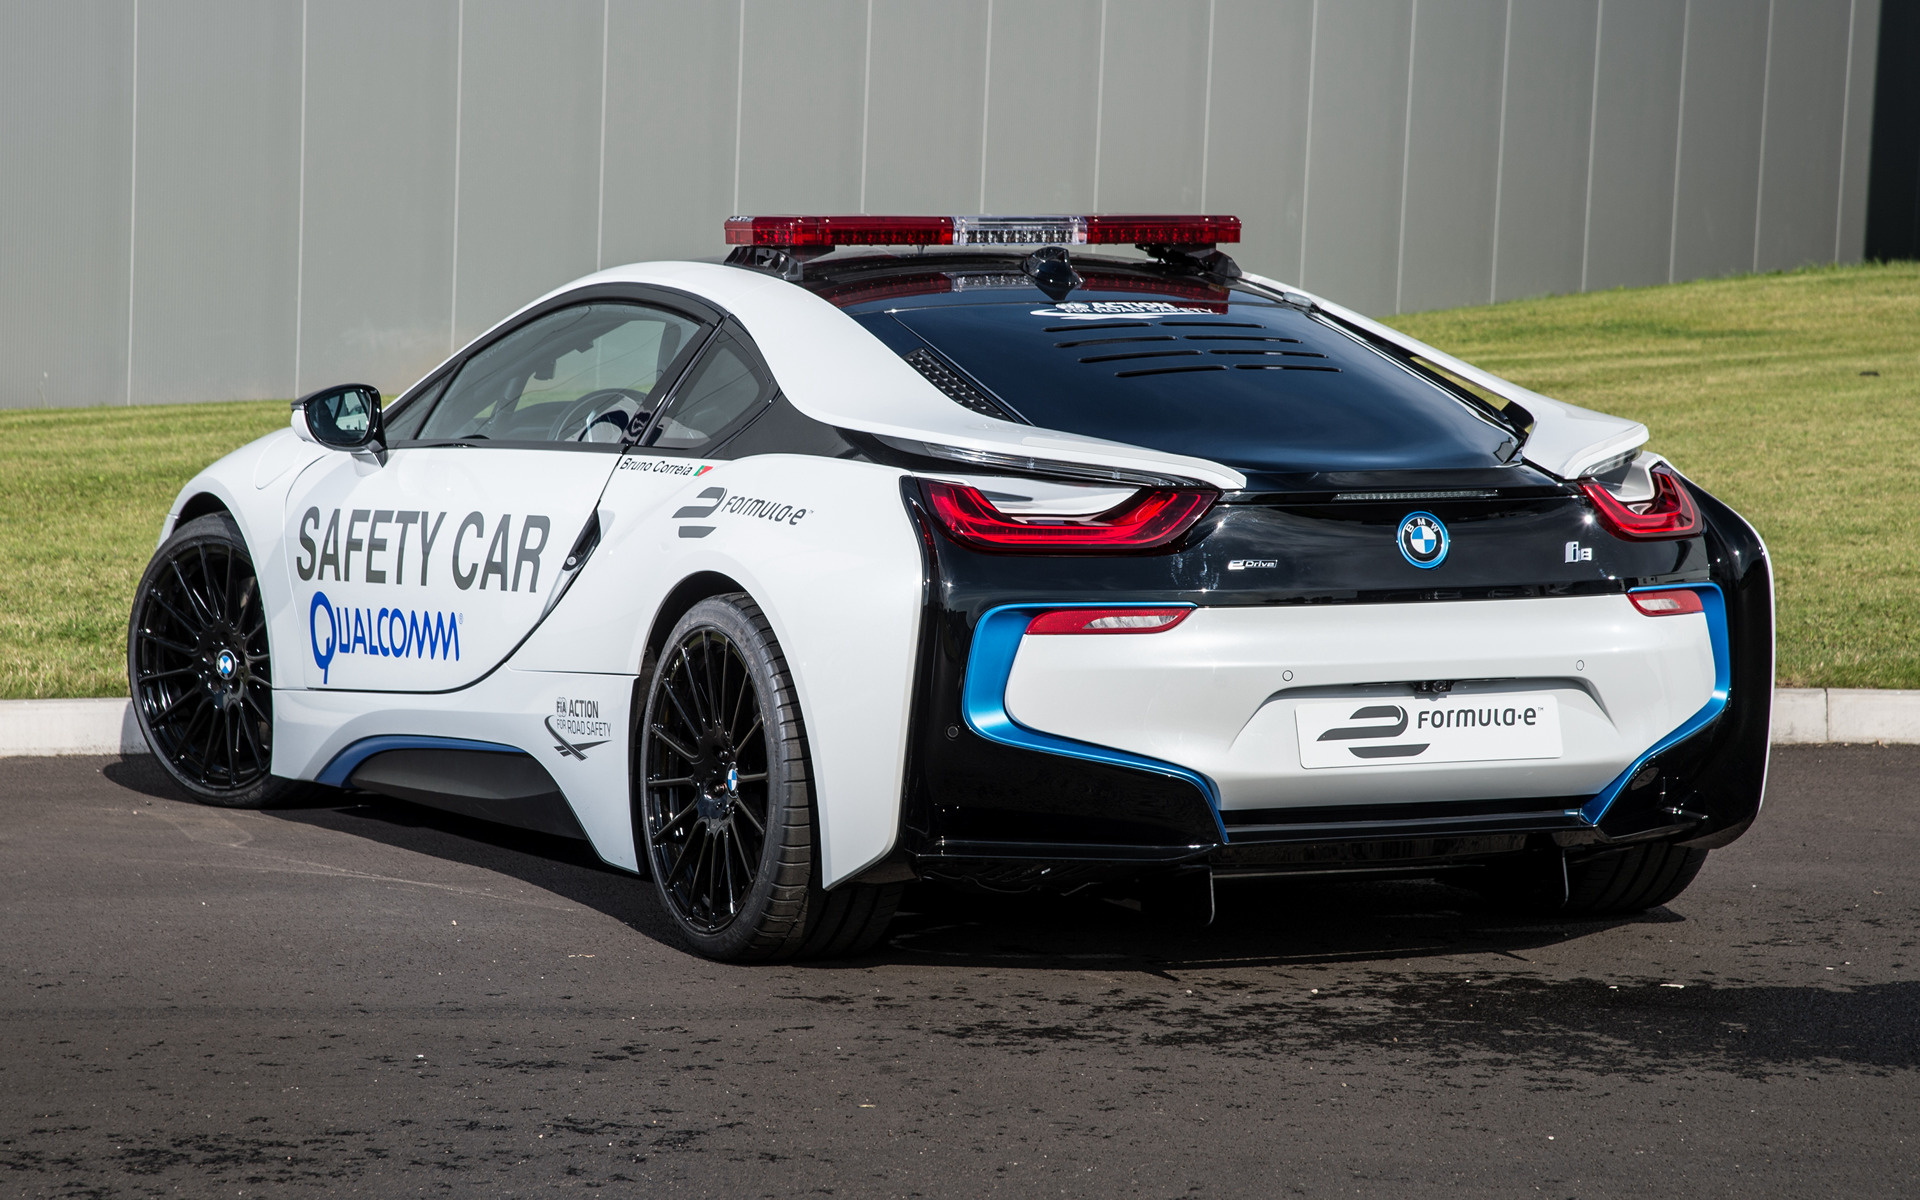 bmw i8 formula e safety car 2014 wallpapers and hd. Black Bedroom Furniture Sets. Home Design Ideas